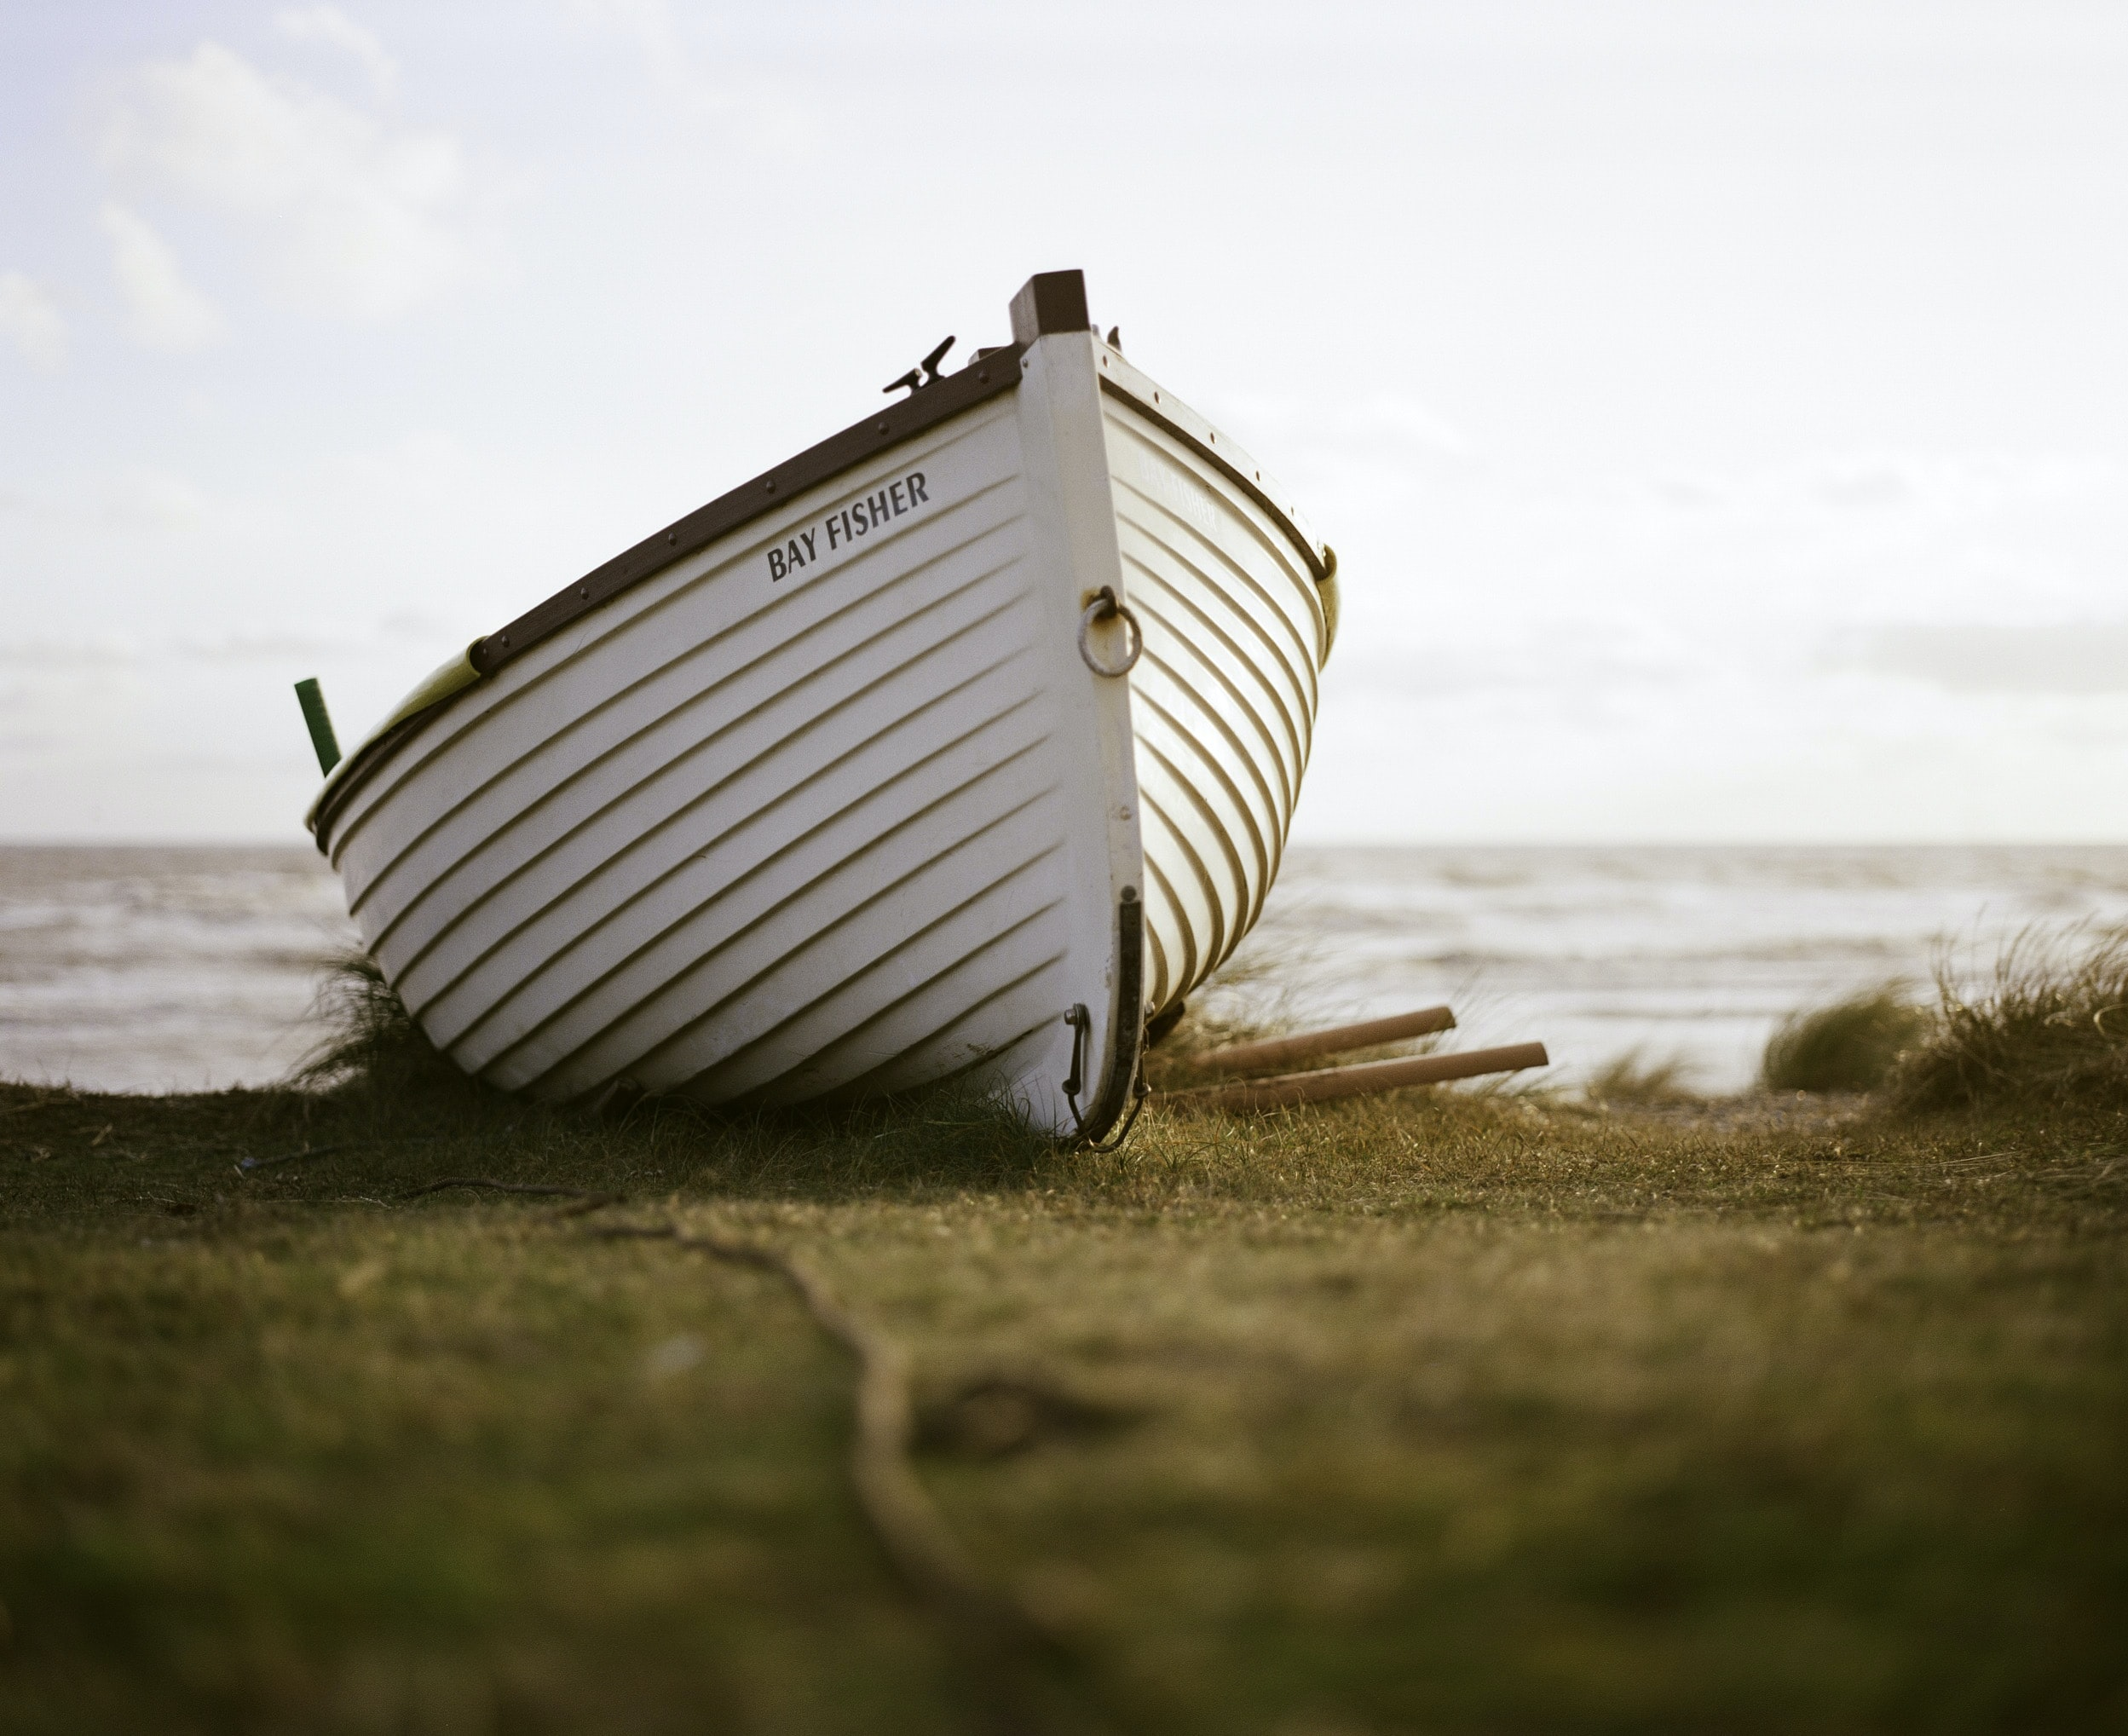 white boat on green grass field under gray sky